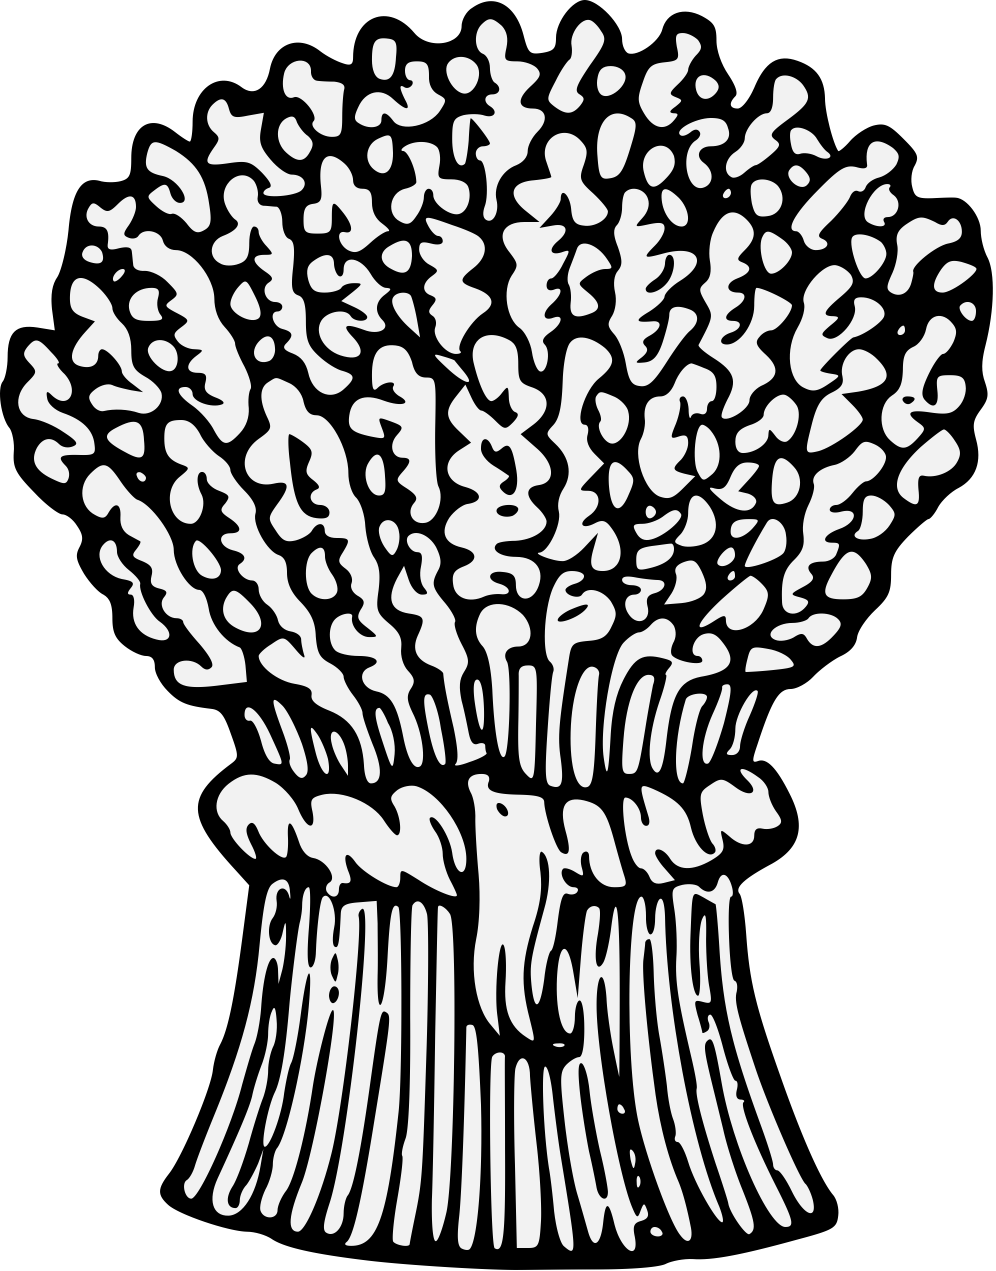 Stalk drawing at getdrawings. Grains clipart wheat shock